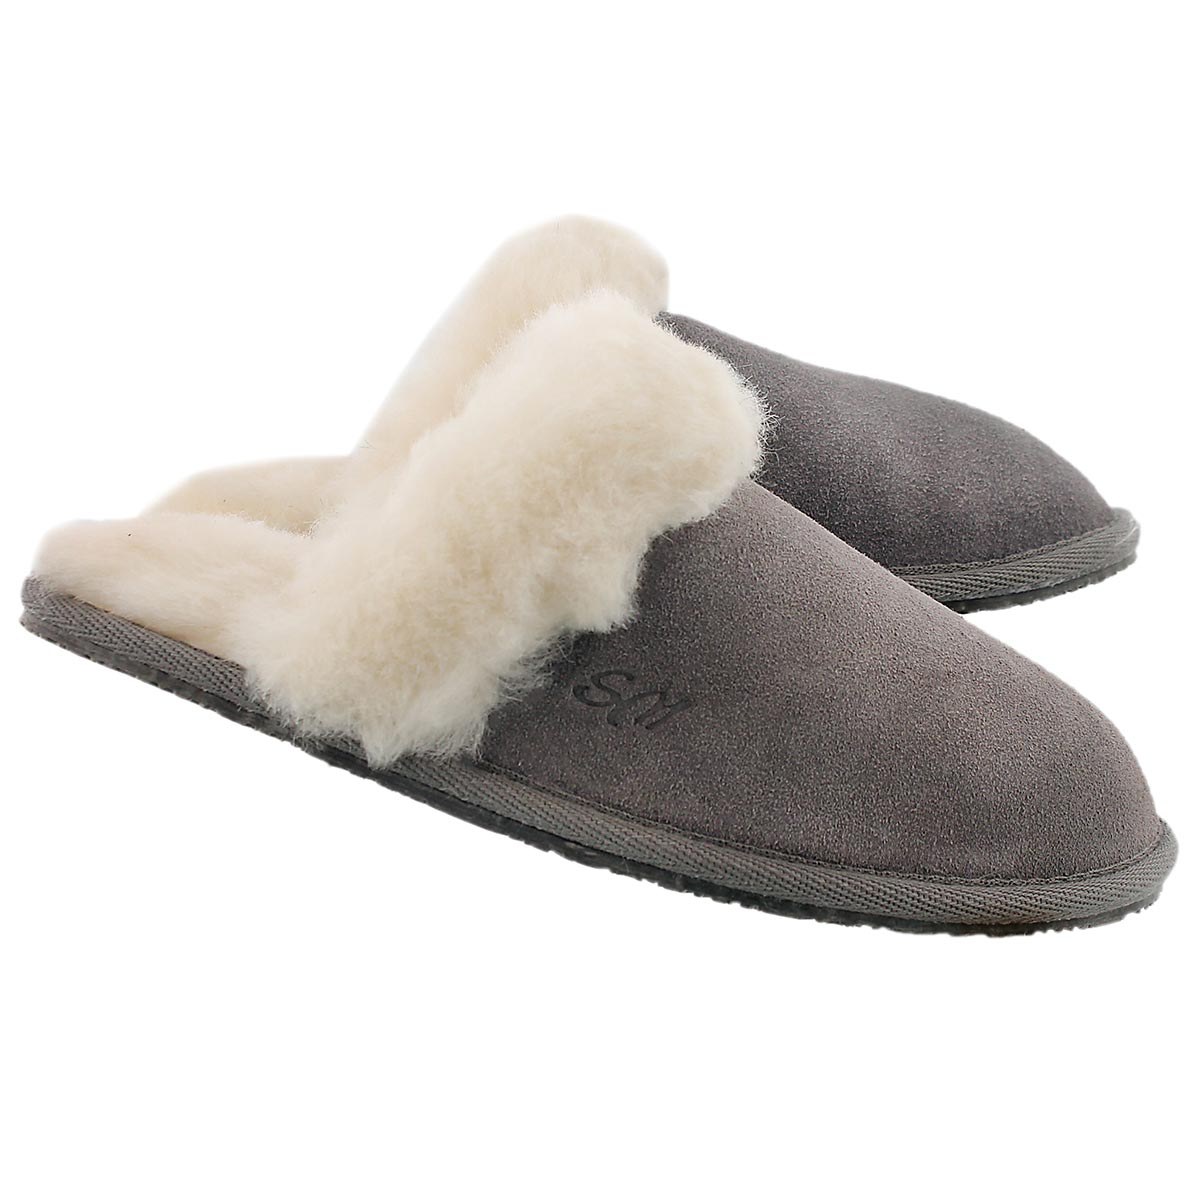 Lds Sassy grey mem. foam slipper